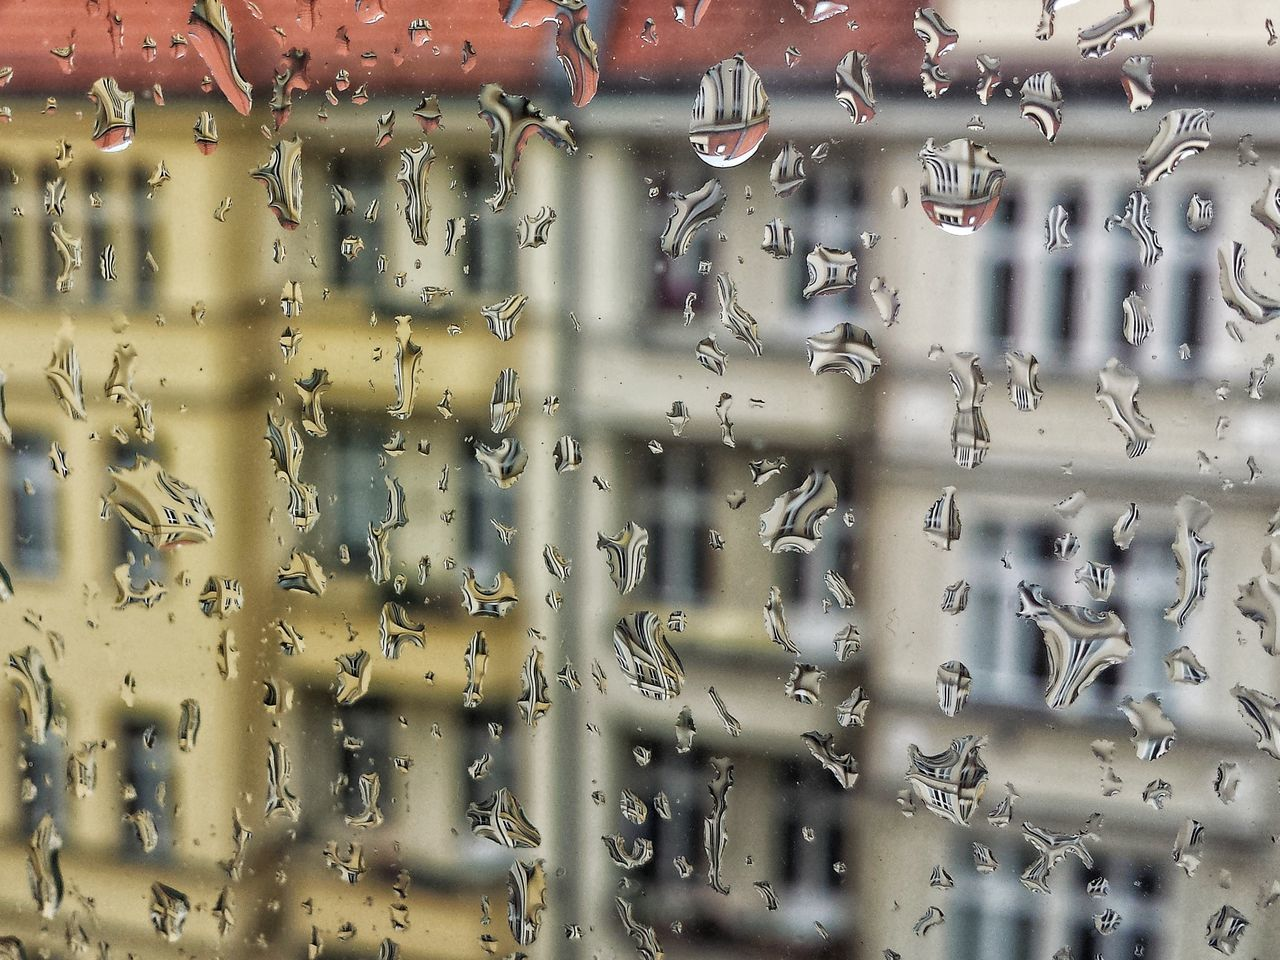 Raindrops Rainy Days Drops Reflection Reflection In Rain Drops Close-up Indoors  No People Architecture Eyembestsshots Pattern Texture Backgroud Rain Drops Window Reflection In Windows Berlin